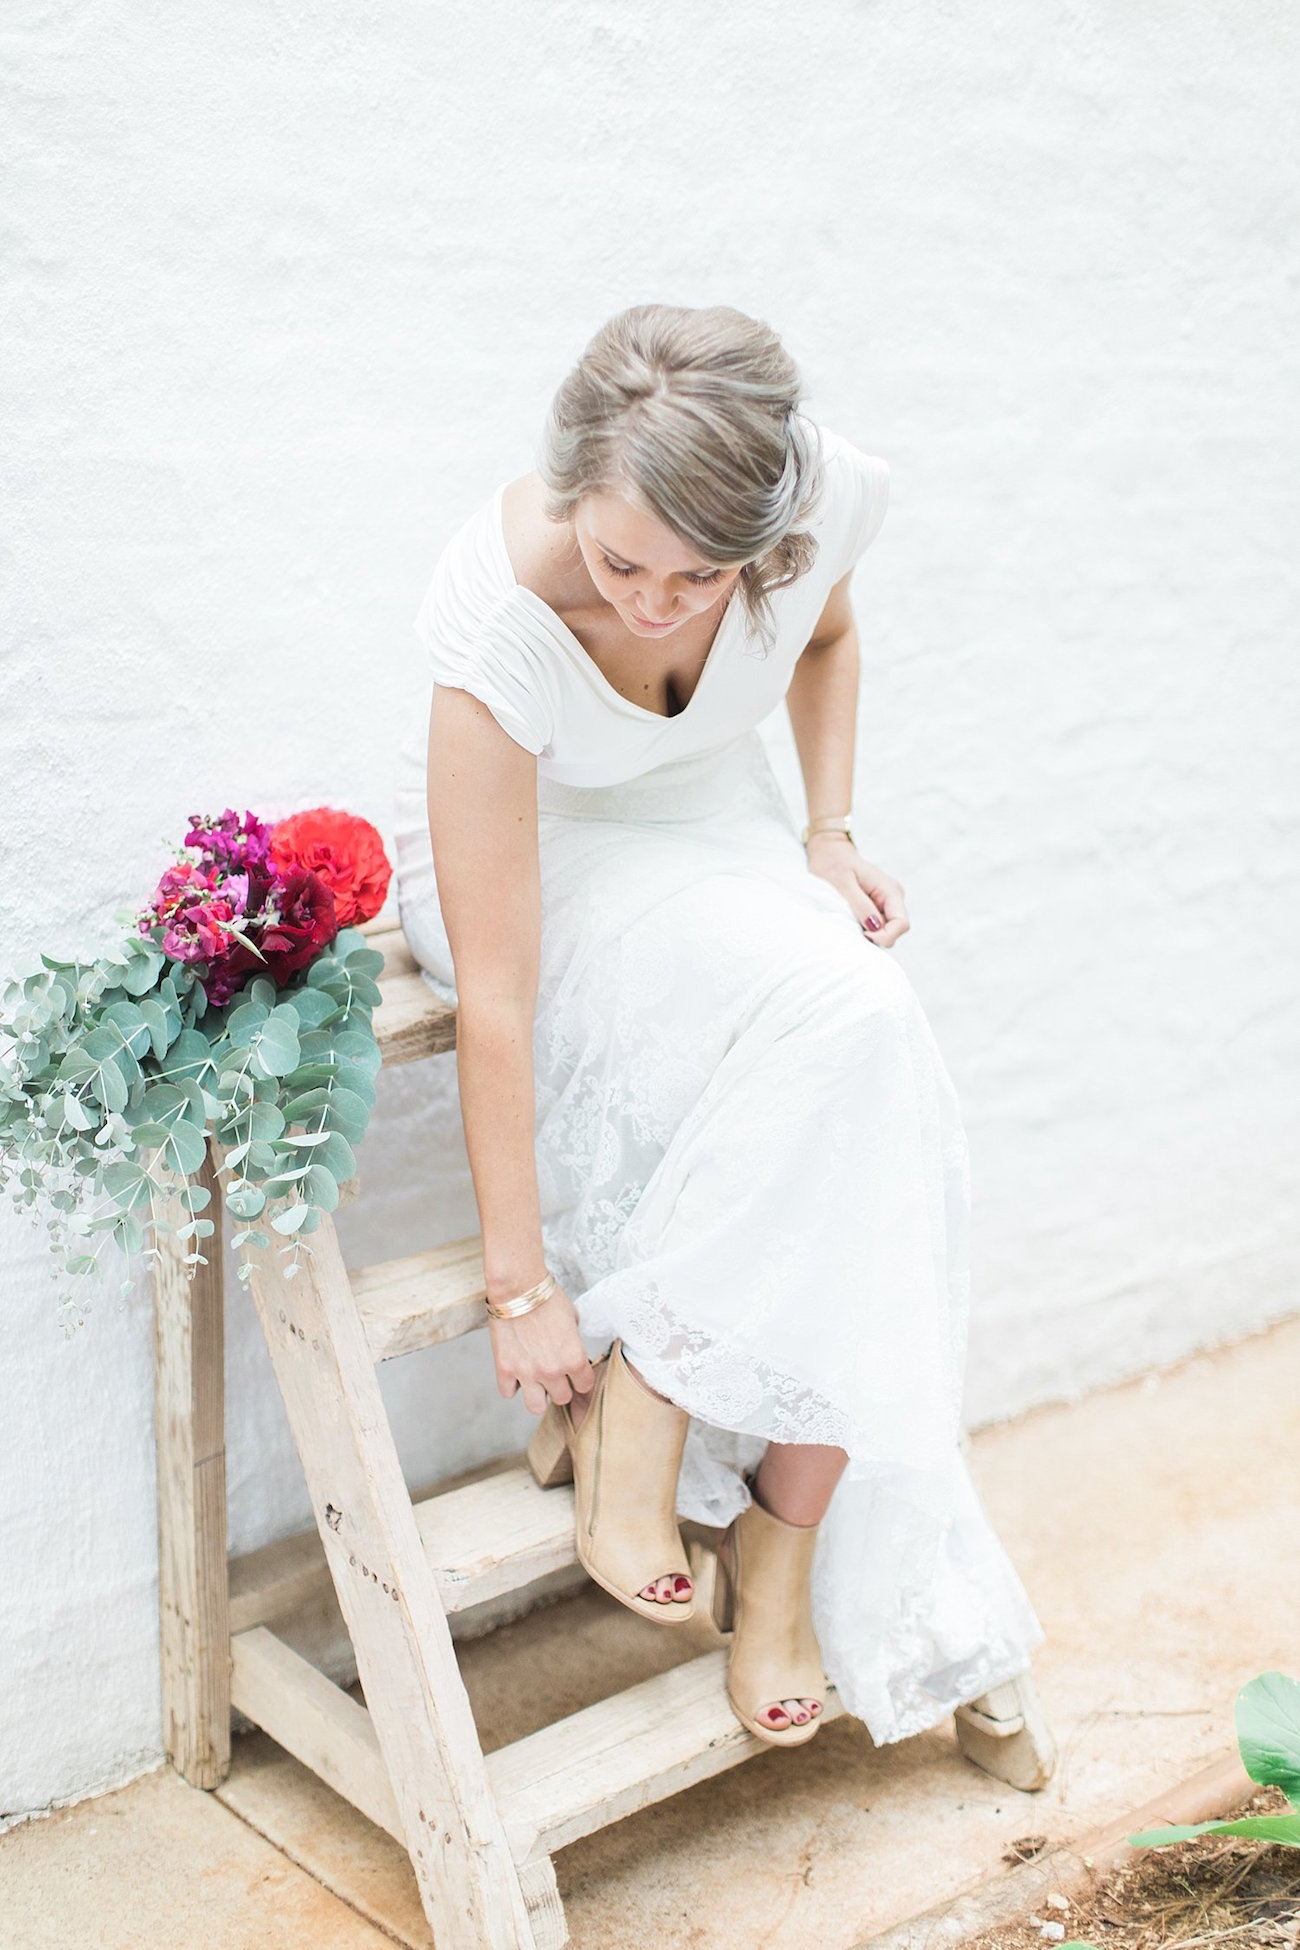 Bride with Booties | Image: Alicia Landman